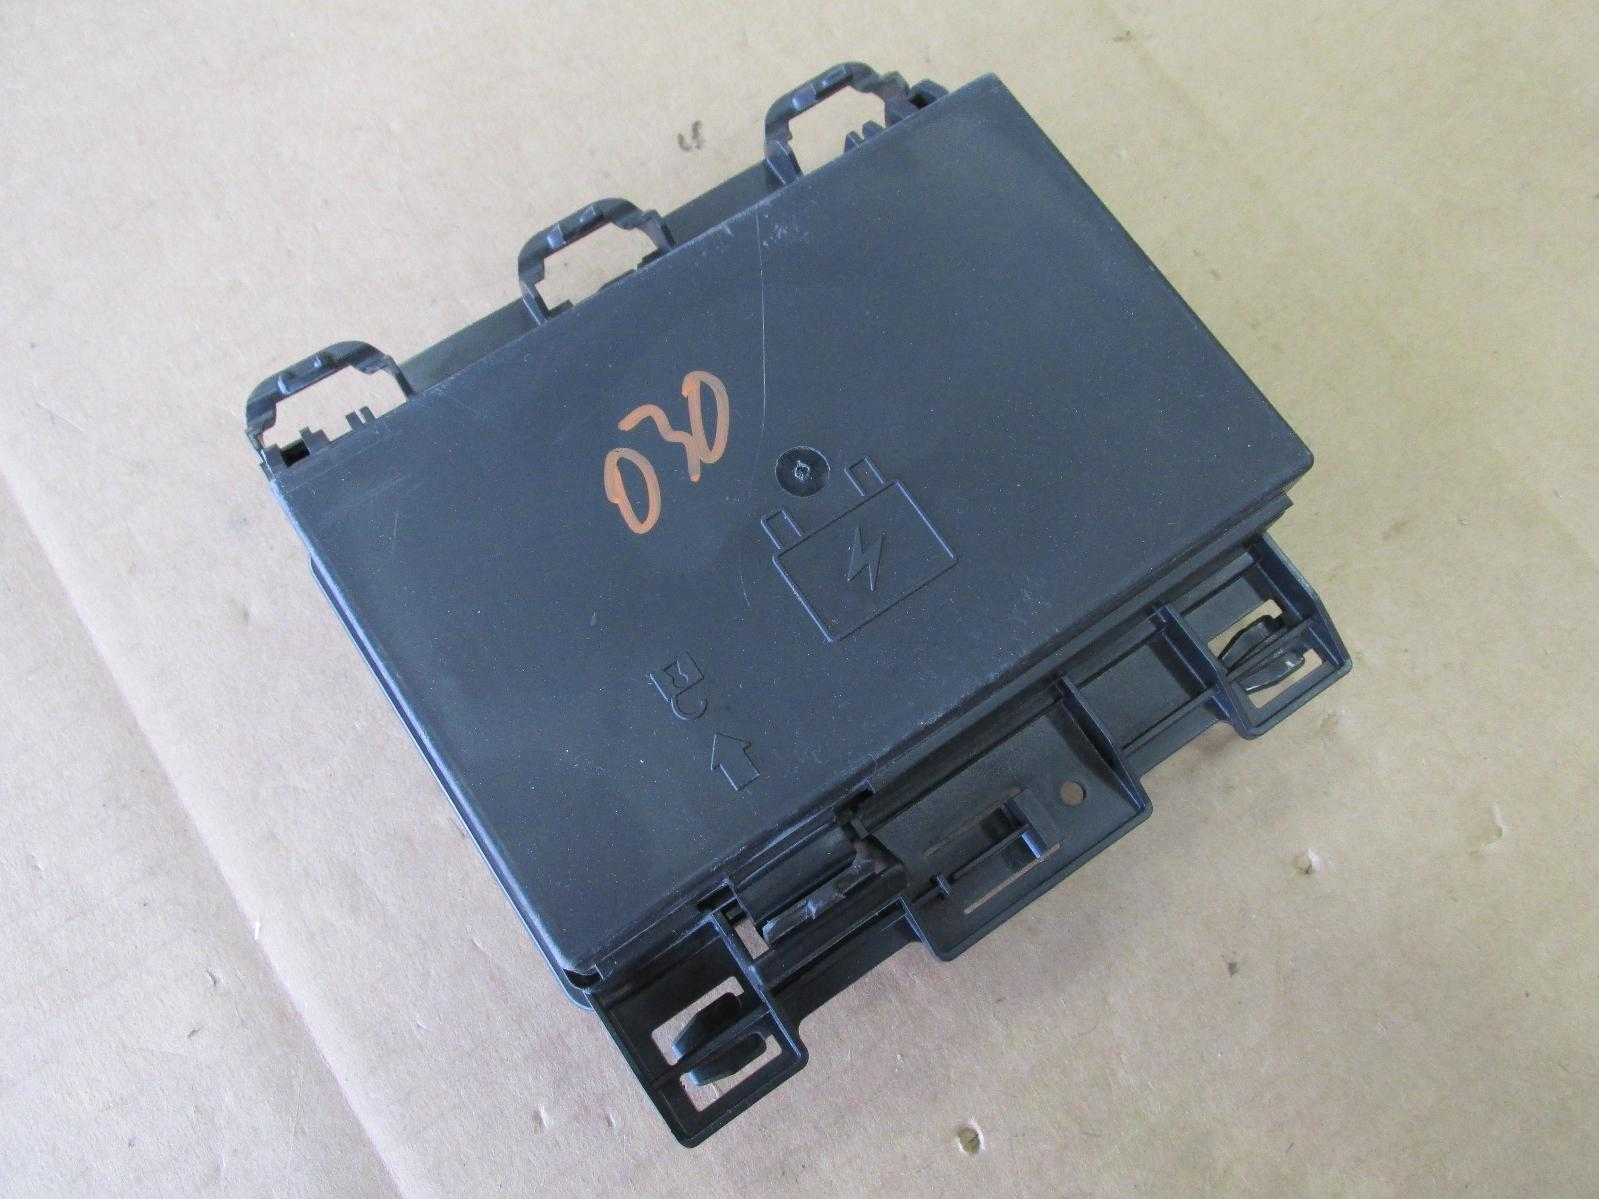 2007 2008 chevy malibu fuse box oem 15291746 | ebay fuse box in chevy malibu fuse box in nissan versa